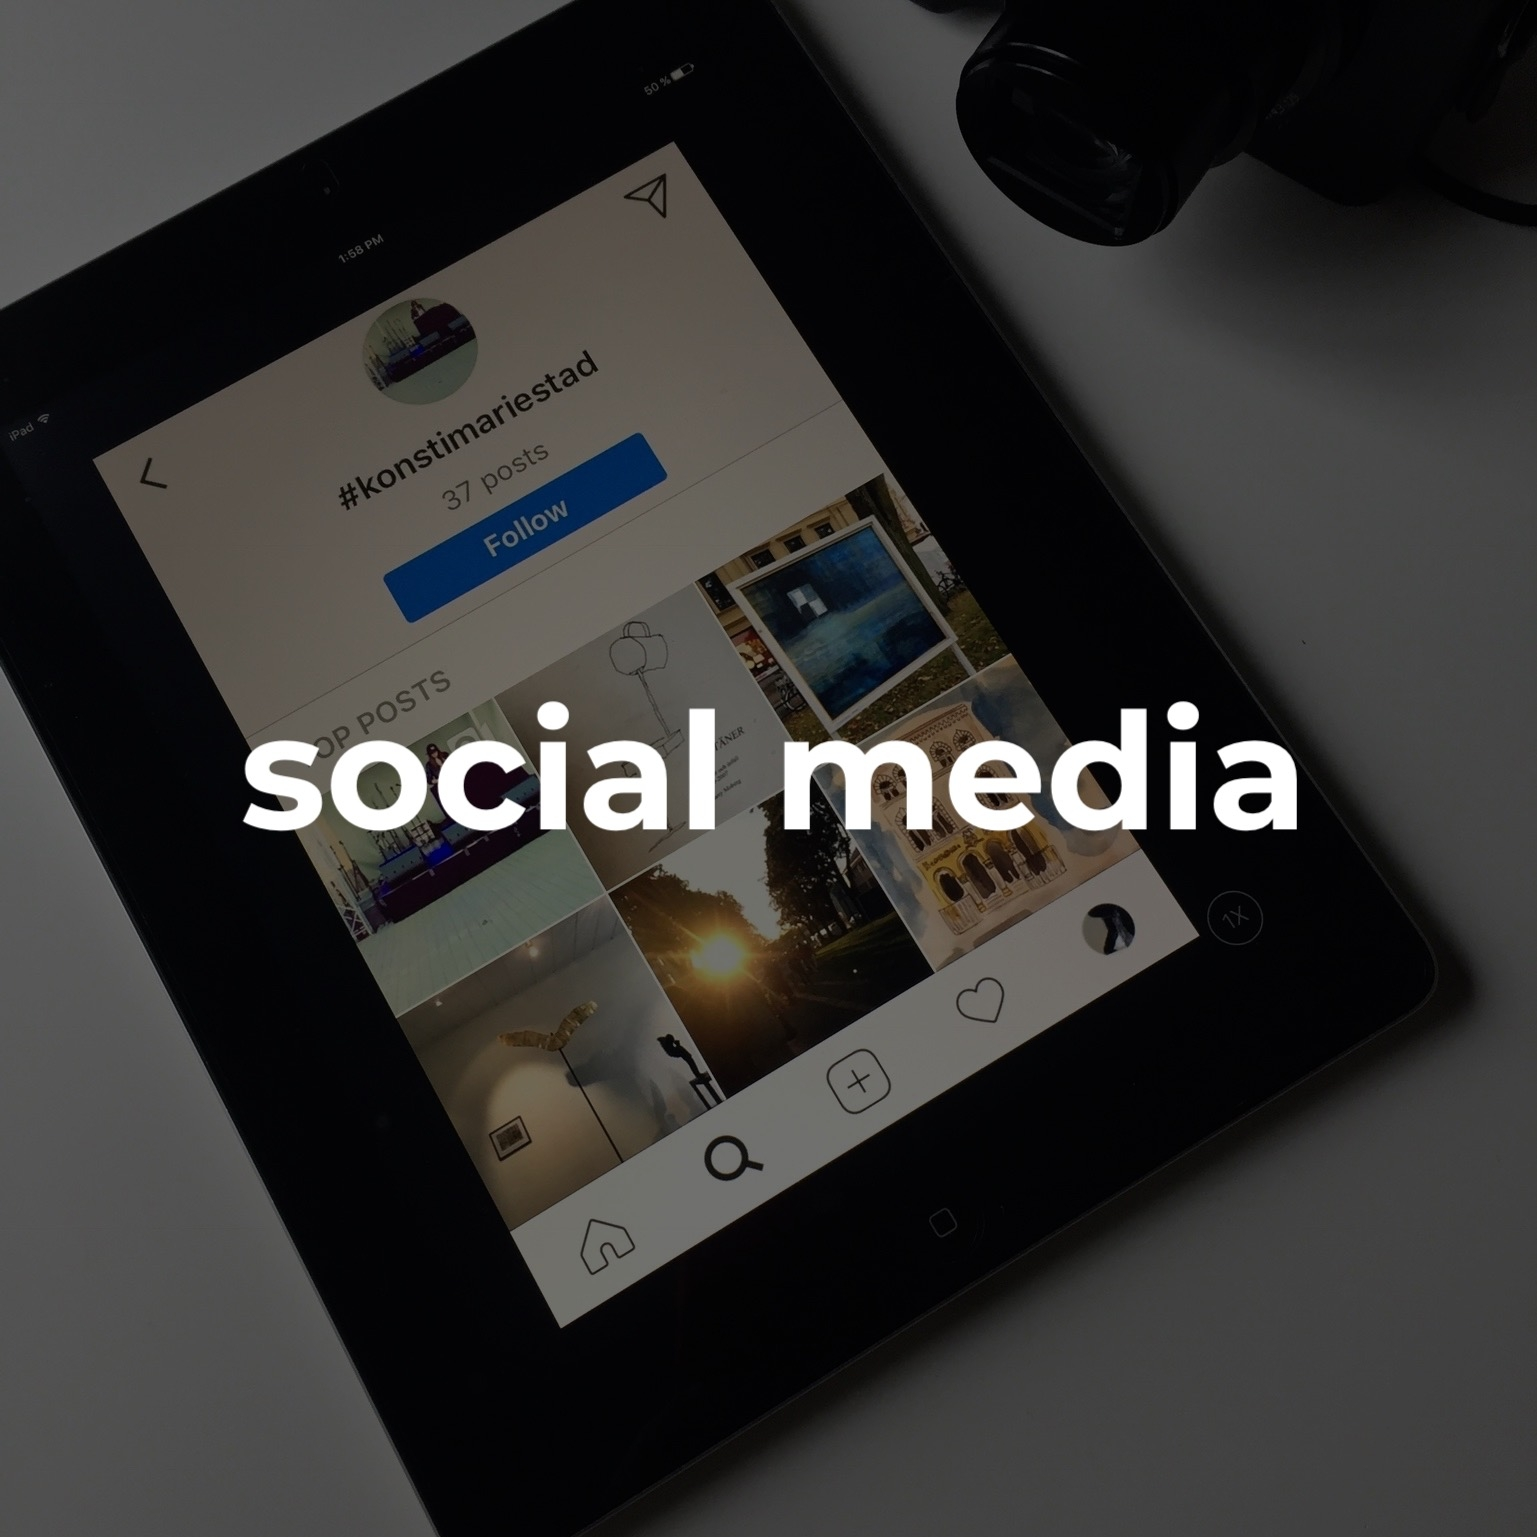 #socialmediacampaign    social media platforms will tie the visual elements of your brand id with your unique story.